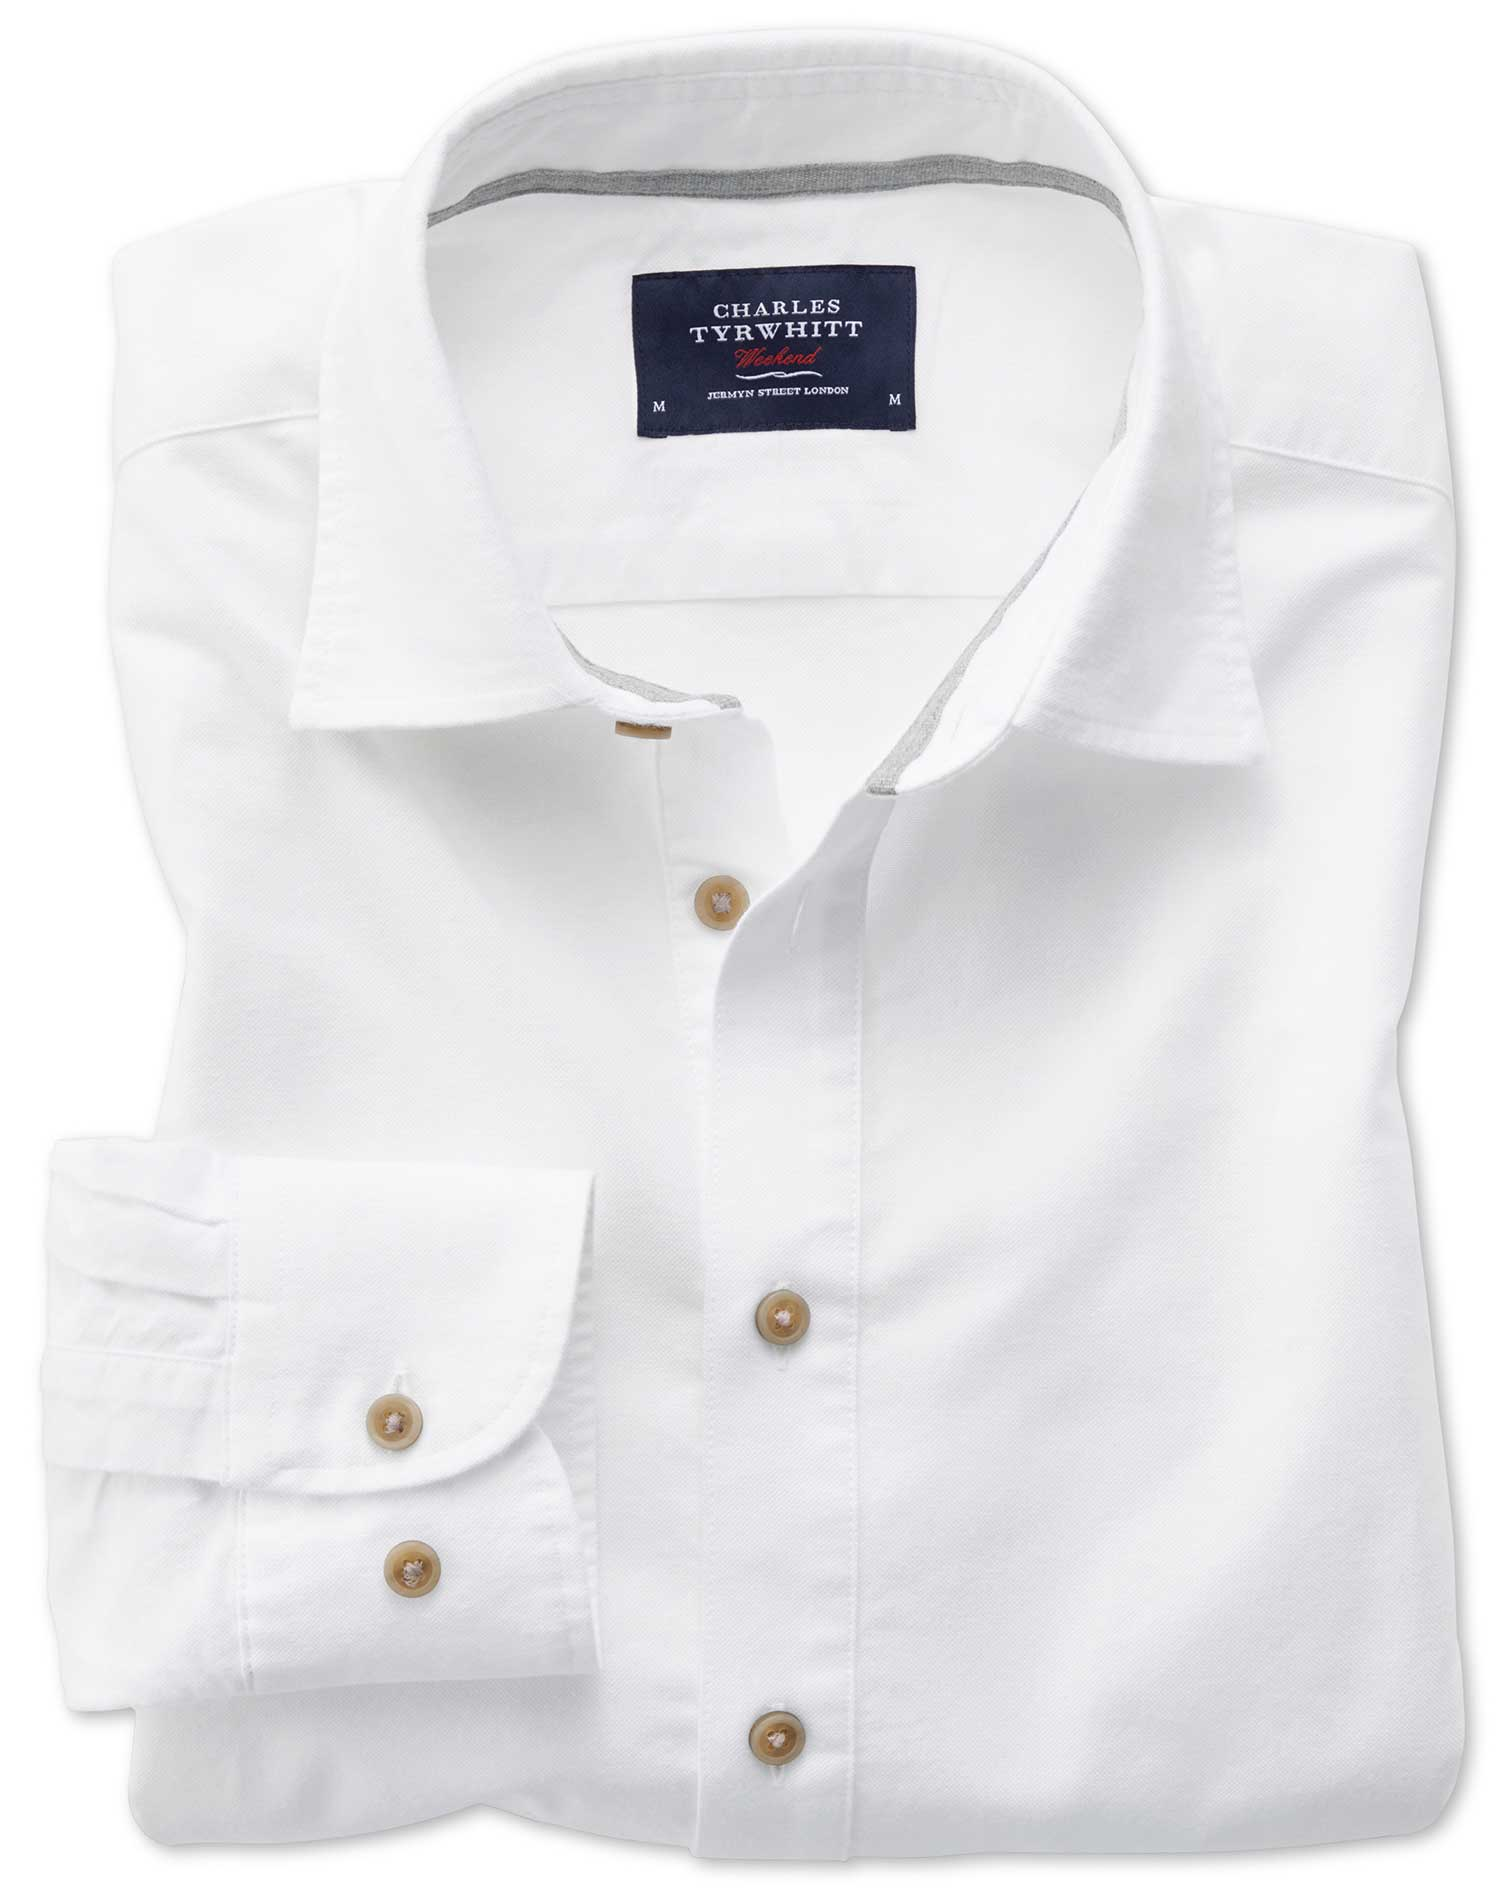 Classic Fit Popover Off-White Cotton Shirt Single Cuff Size XXXL by Charles Tyrwhitt